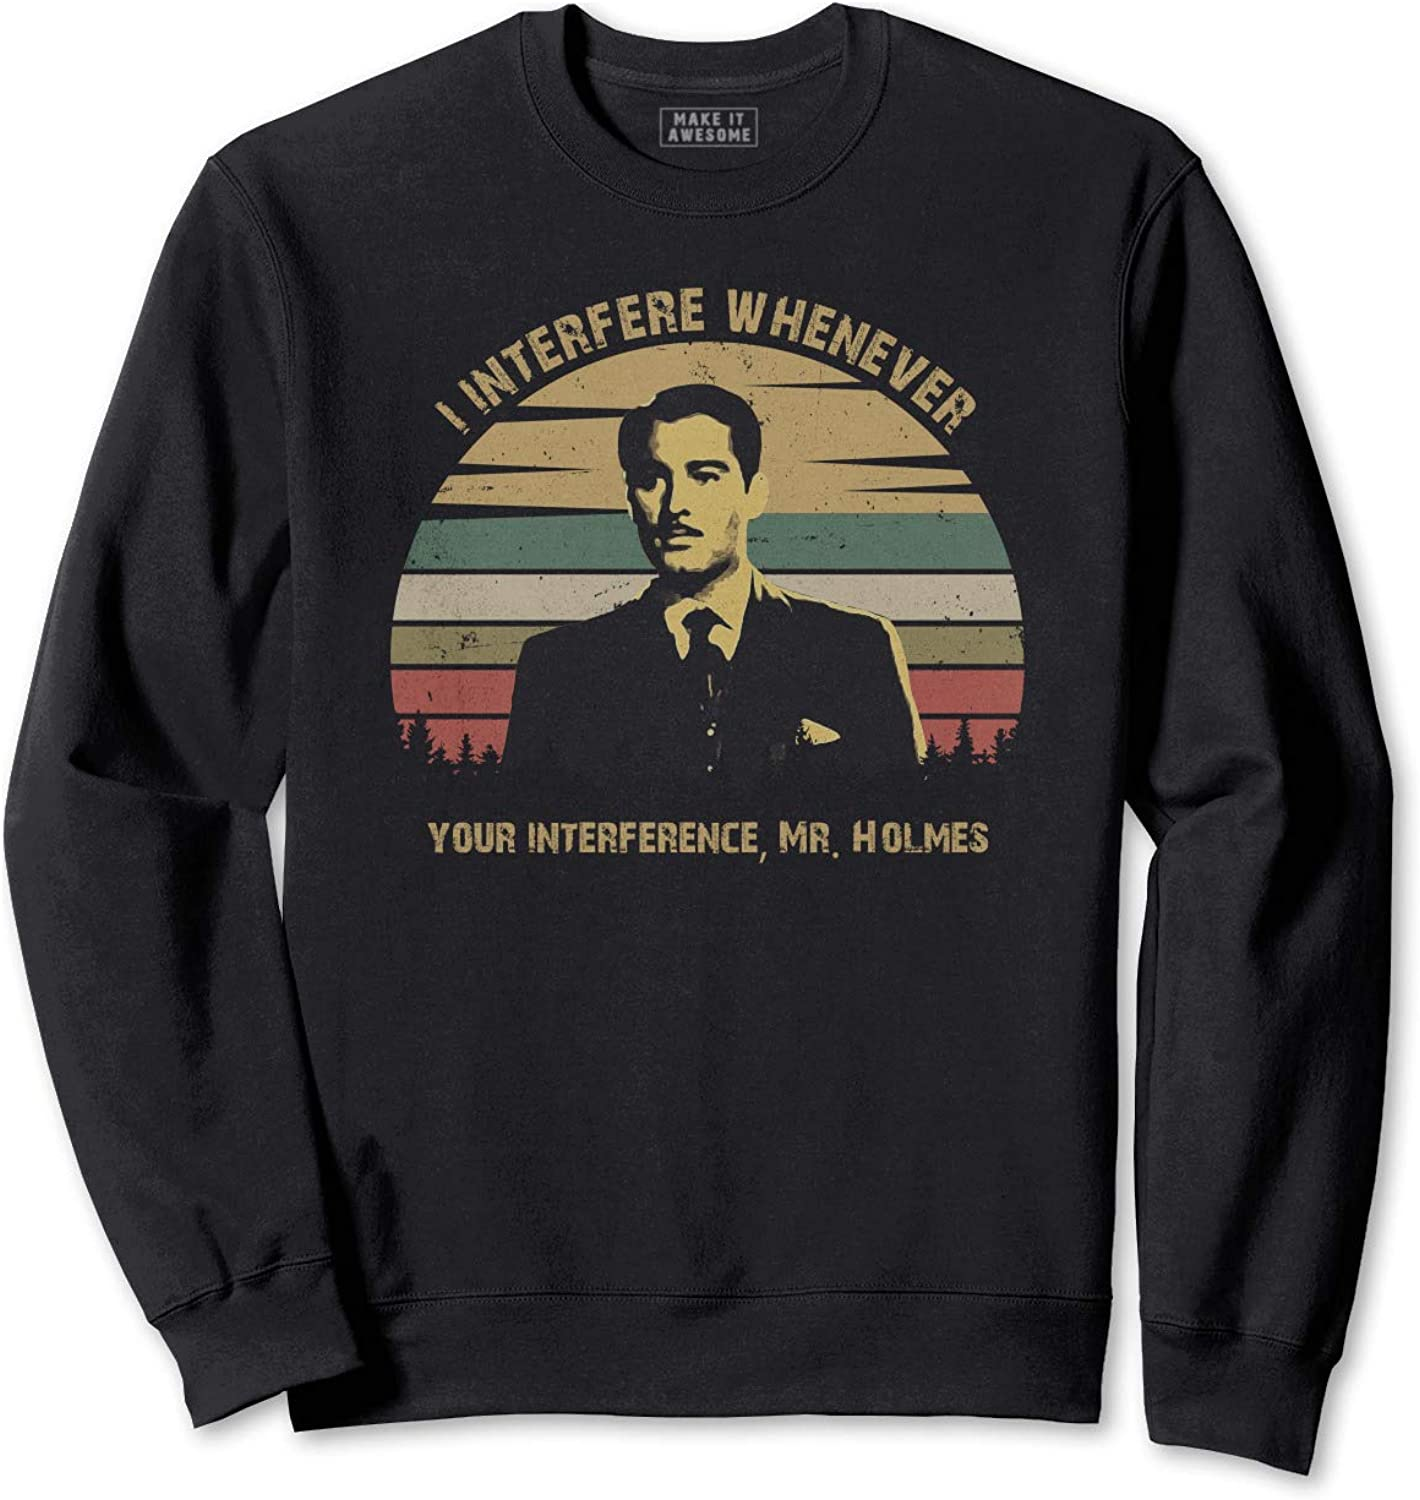 We Dont Want Your Interference Vintage T-Shirt